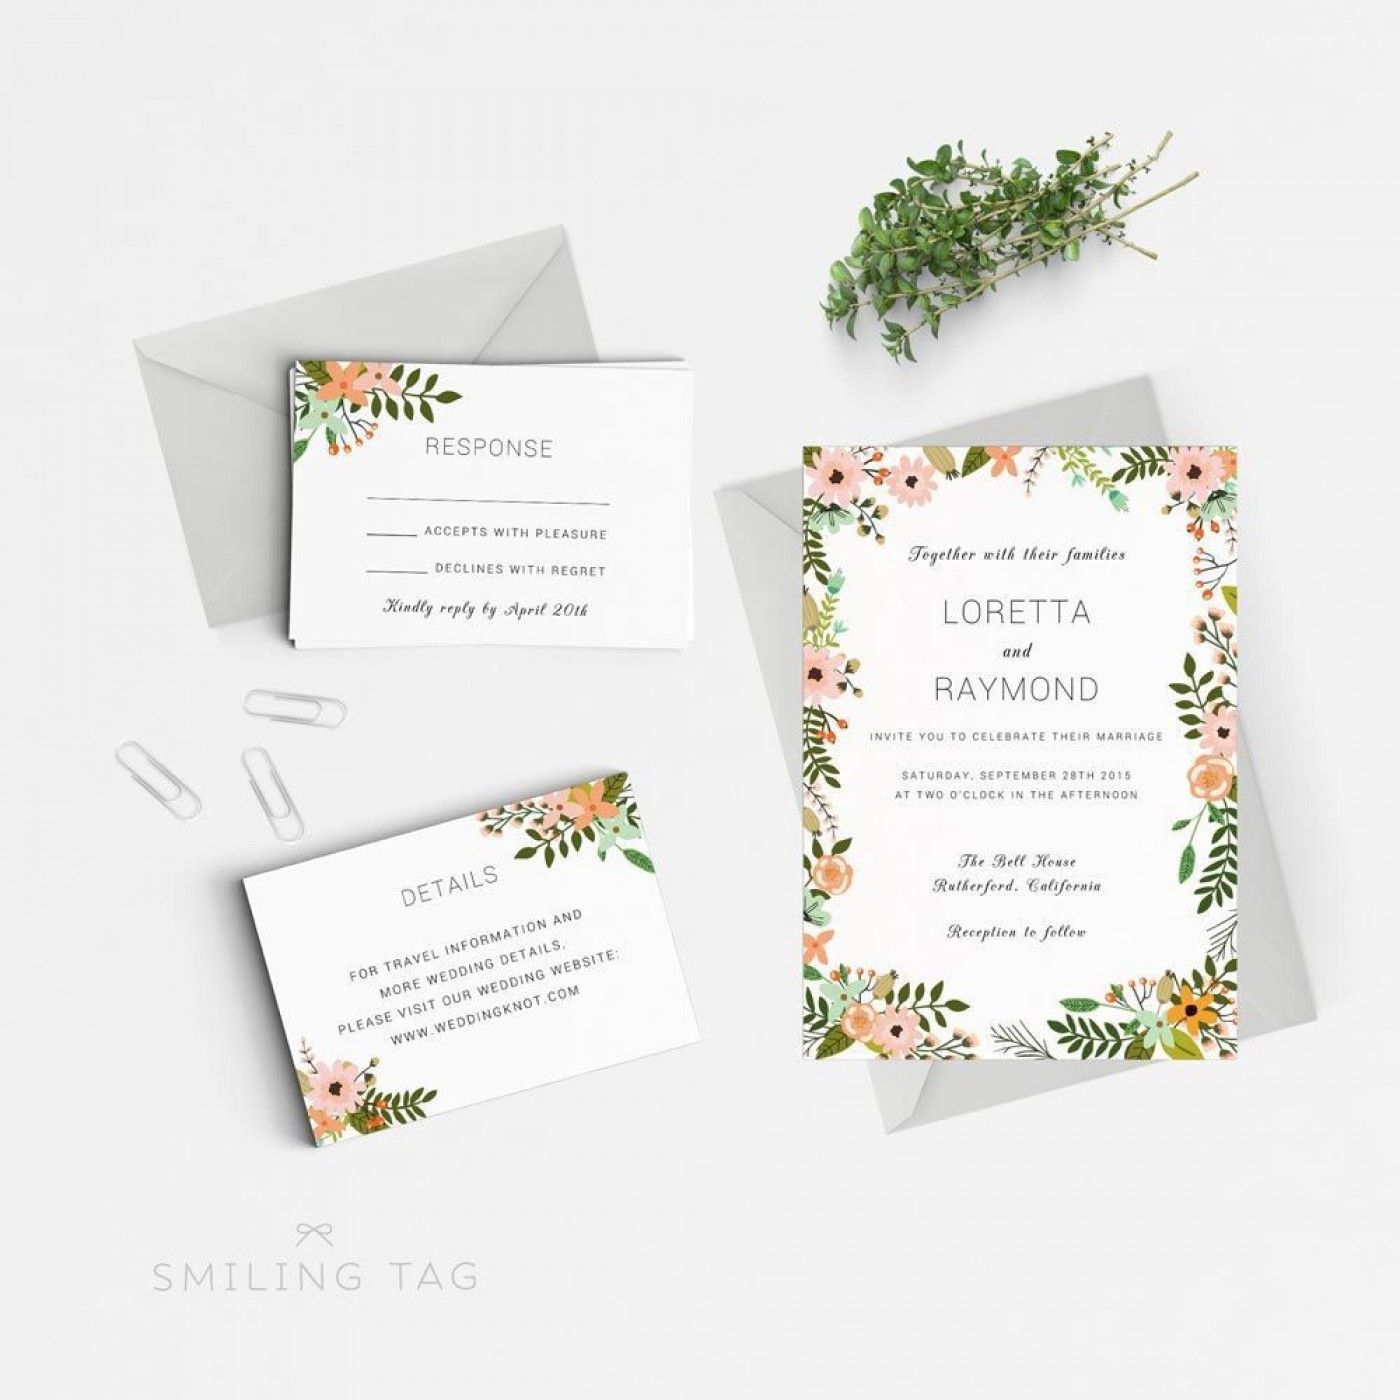 000 Unbelievable Microsoft Word Invitation Template 4 Per Page Concept 1400